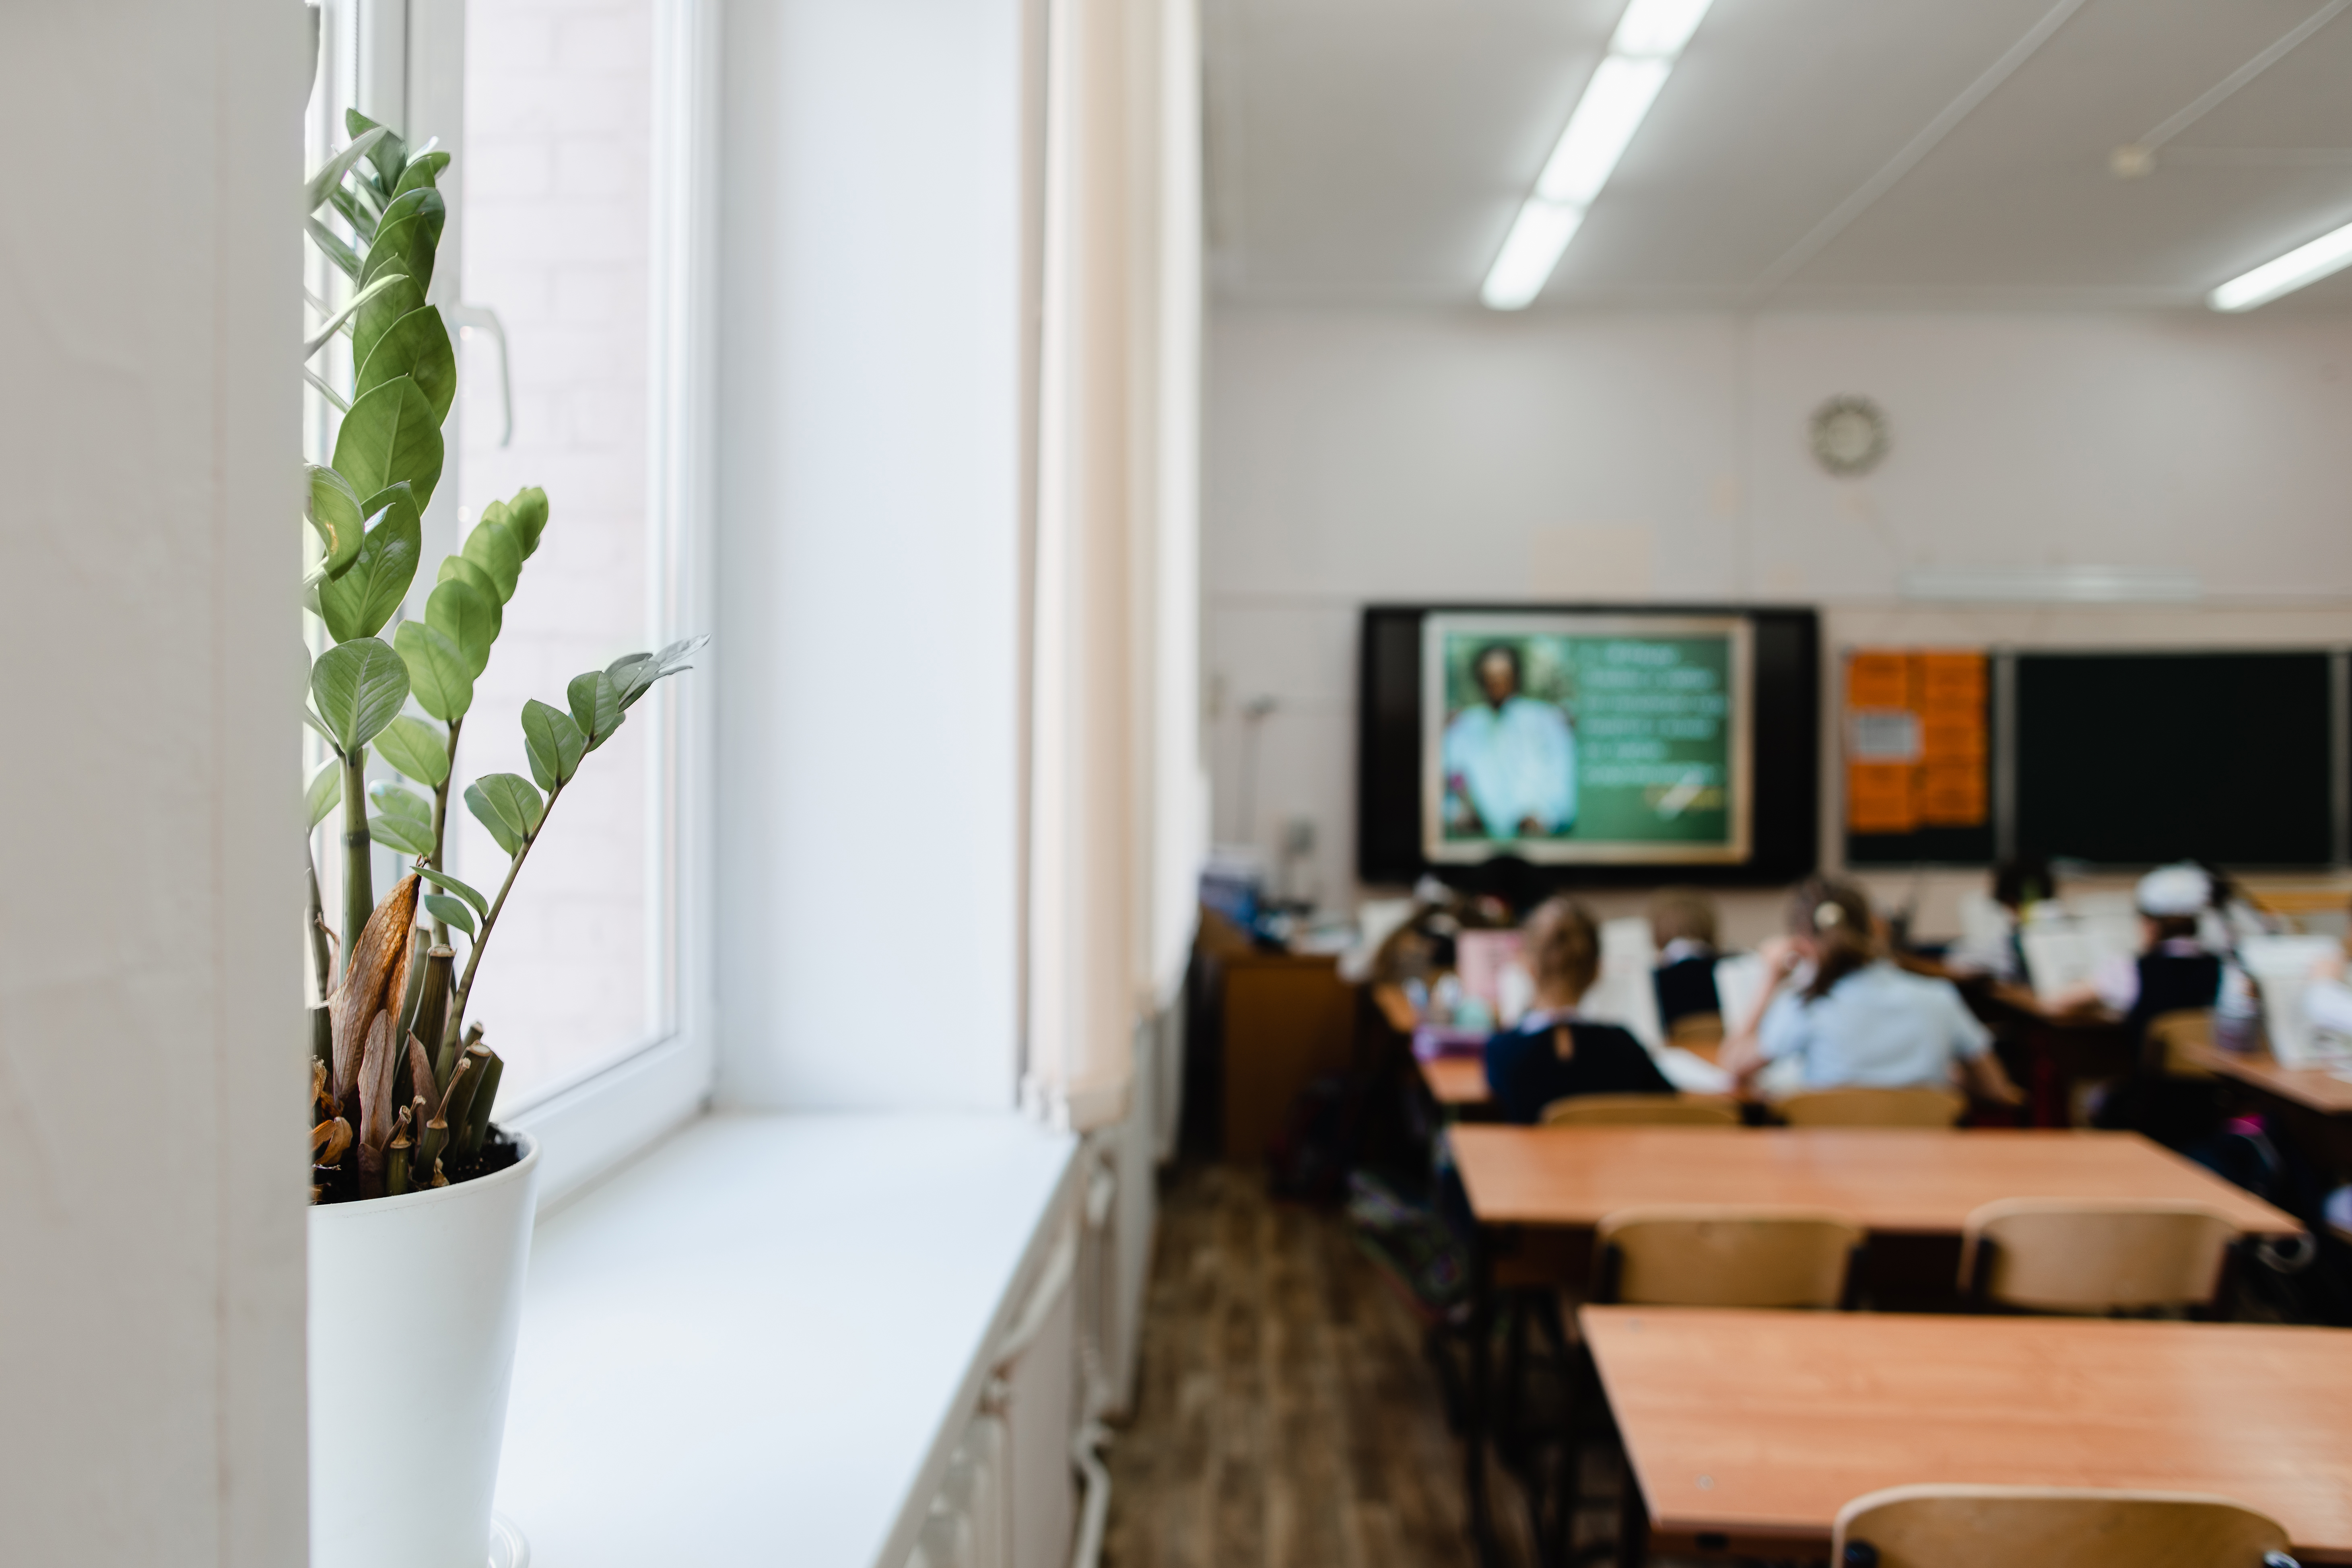 Plant Power | 5 Benefits of having plants in the classroom - plants freshen the air